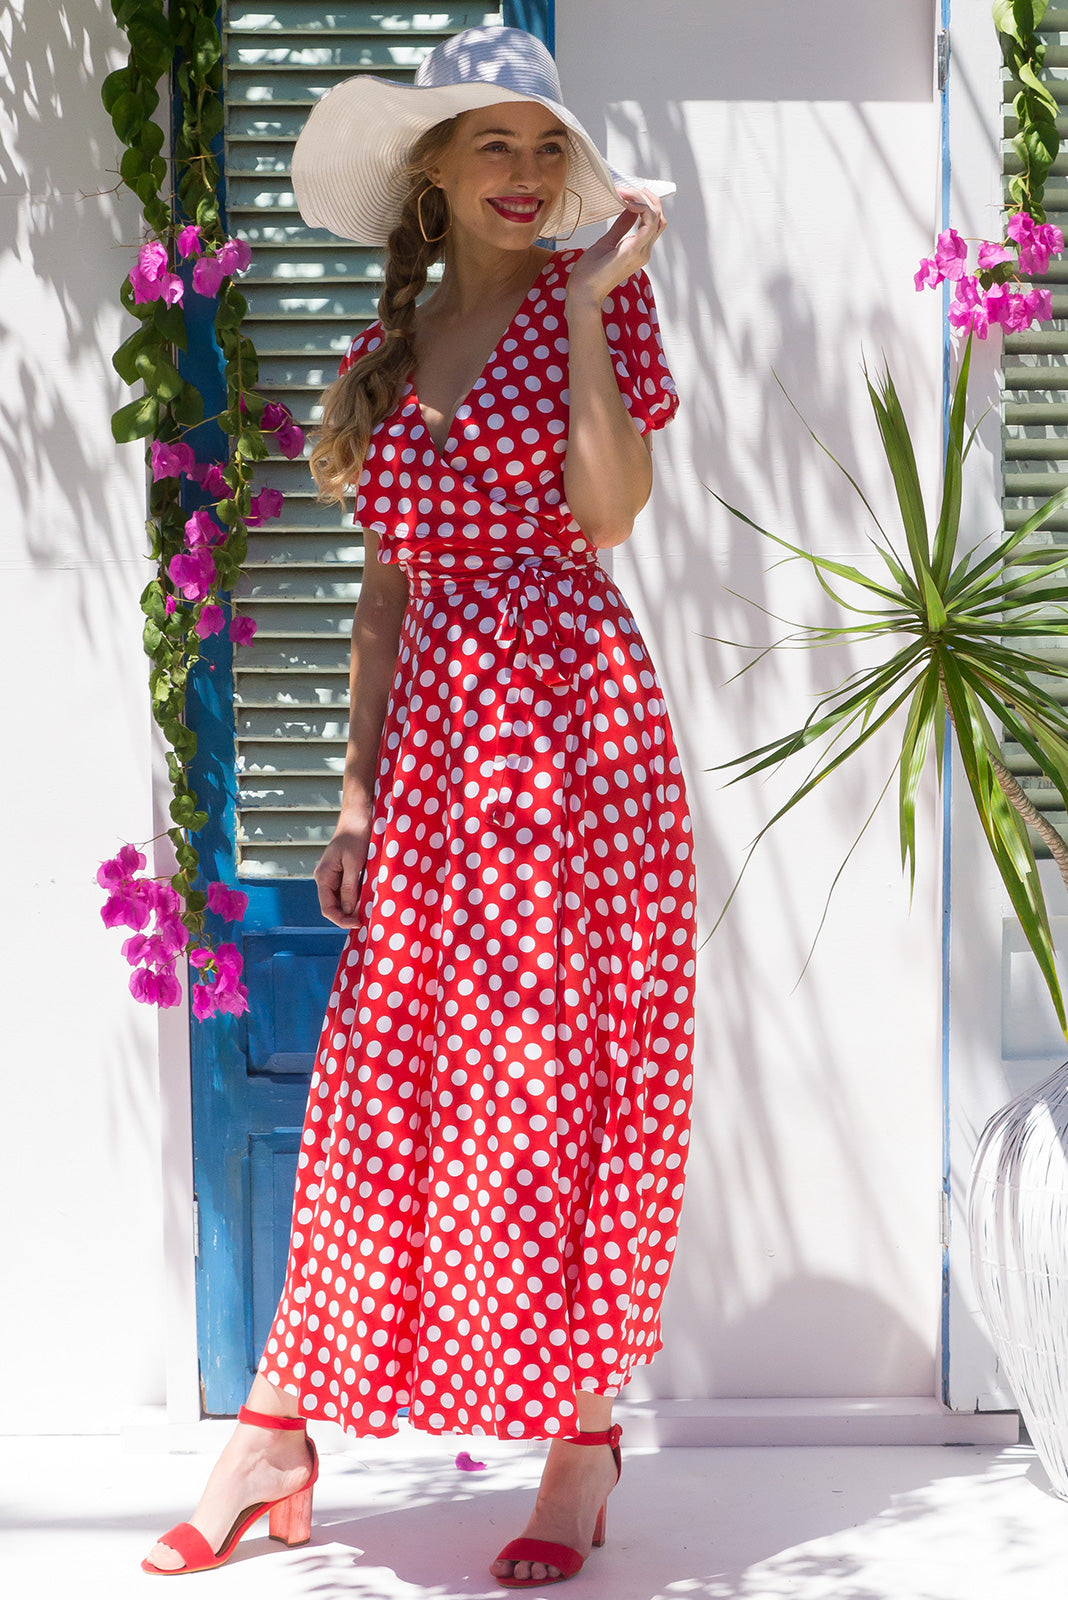 Rita Rio Nessie Red Maxi Wrap Dress with a full frill around the neck and sleeve in a retro inspired red and white spot print on rayon